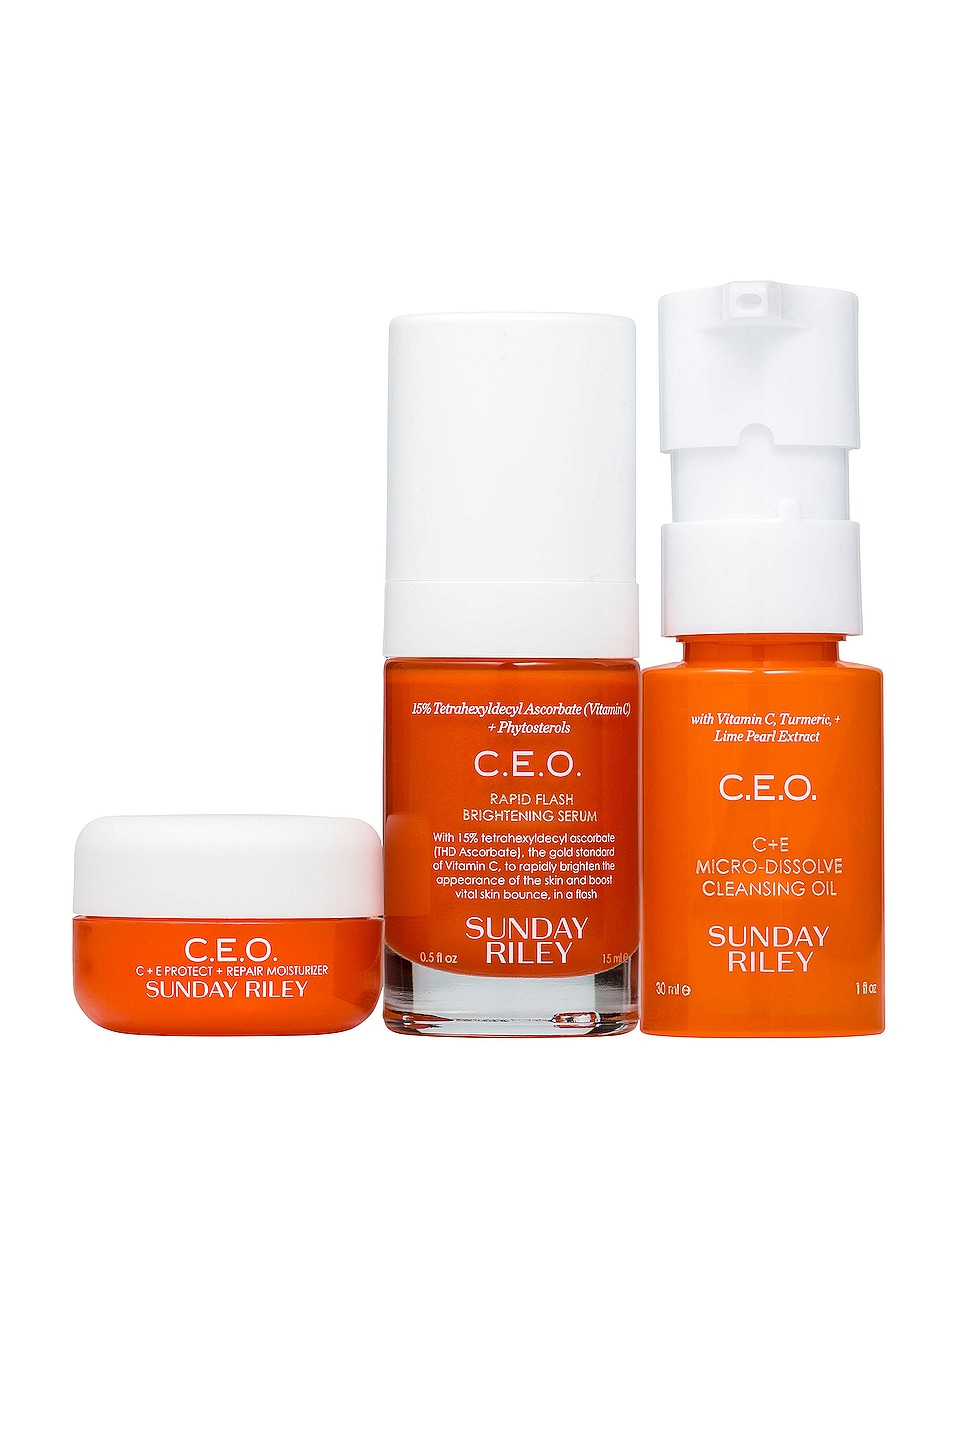 SUNDAY RILEY C.E.O. VITAMIN C KIT